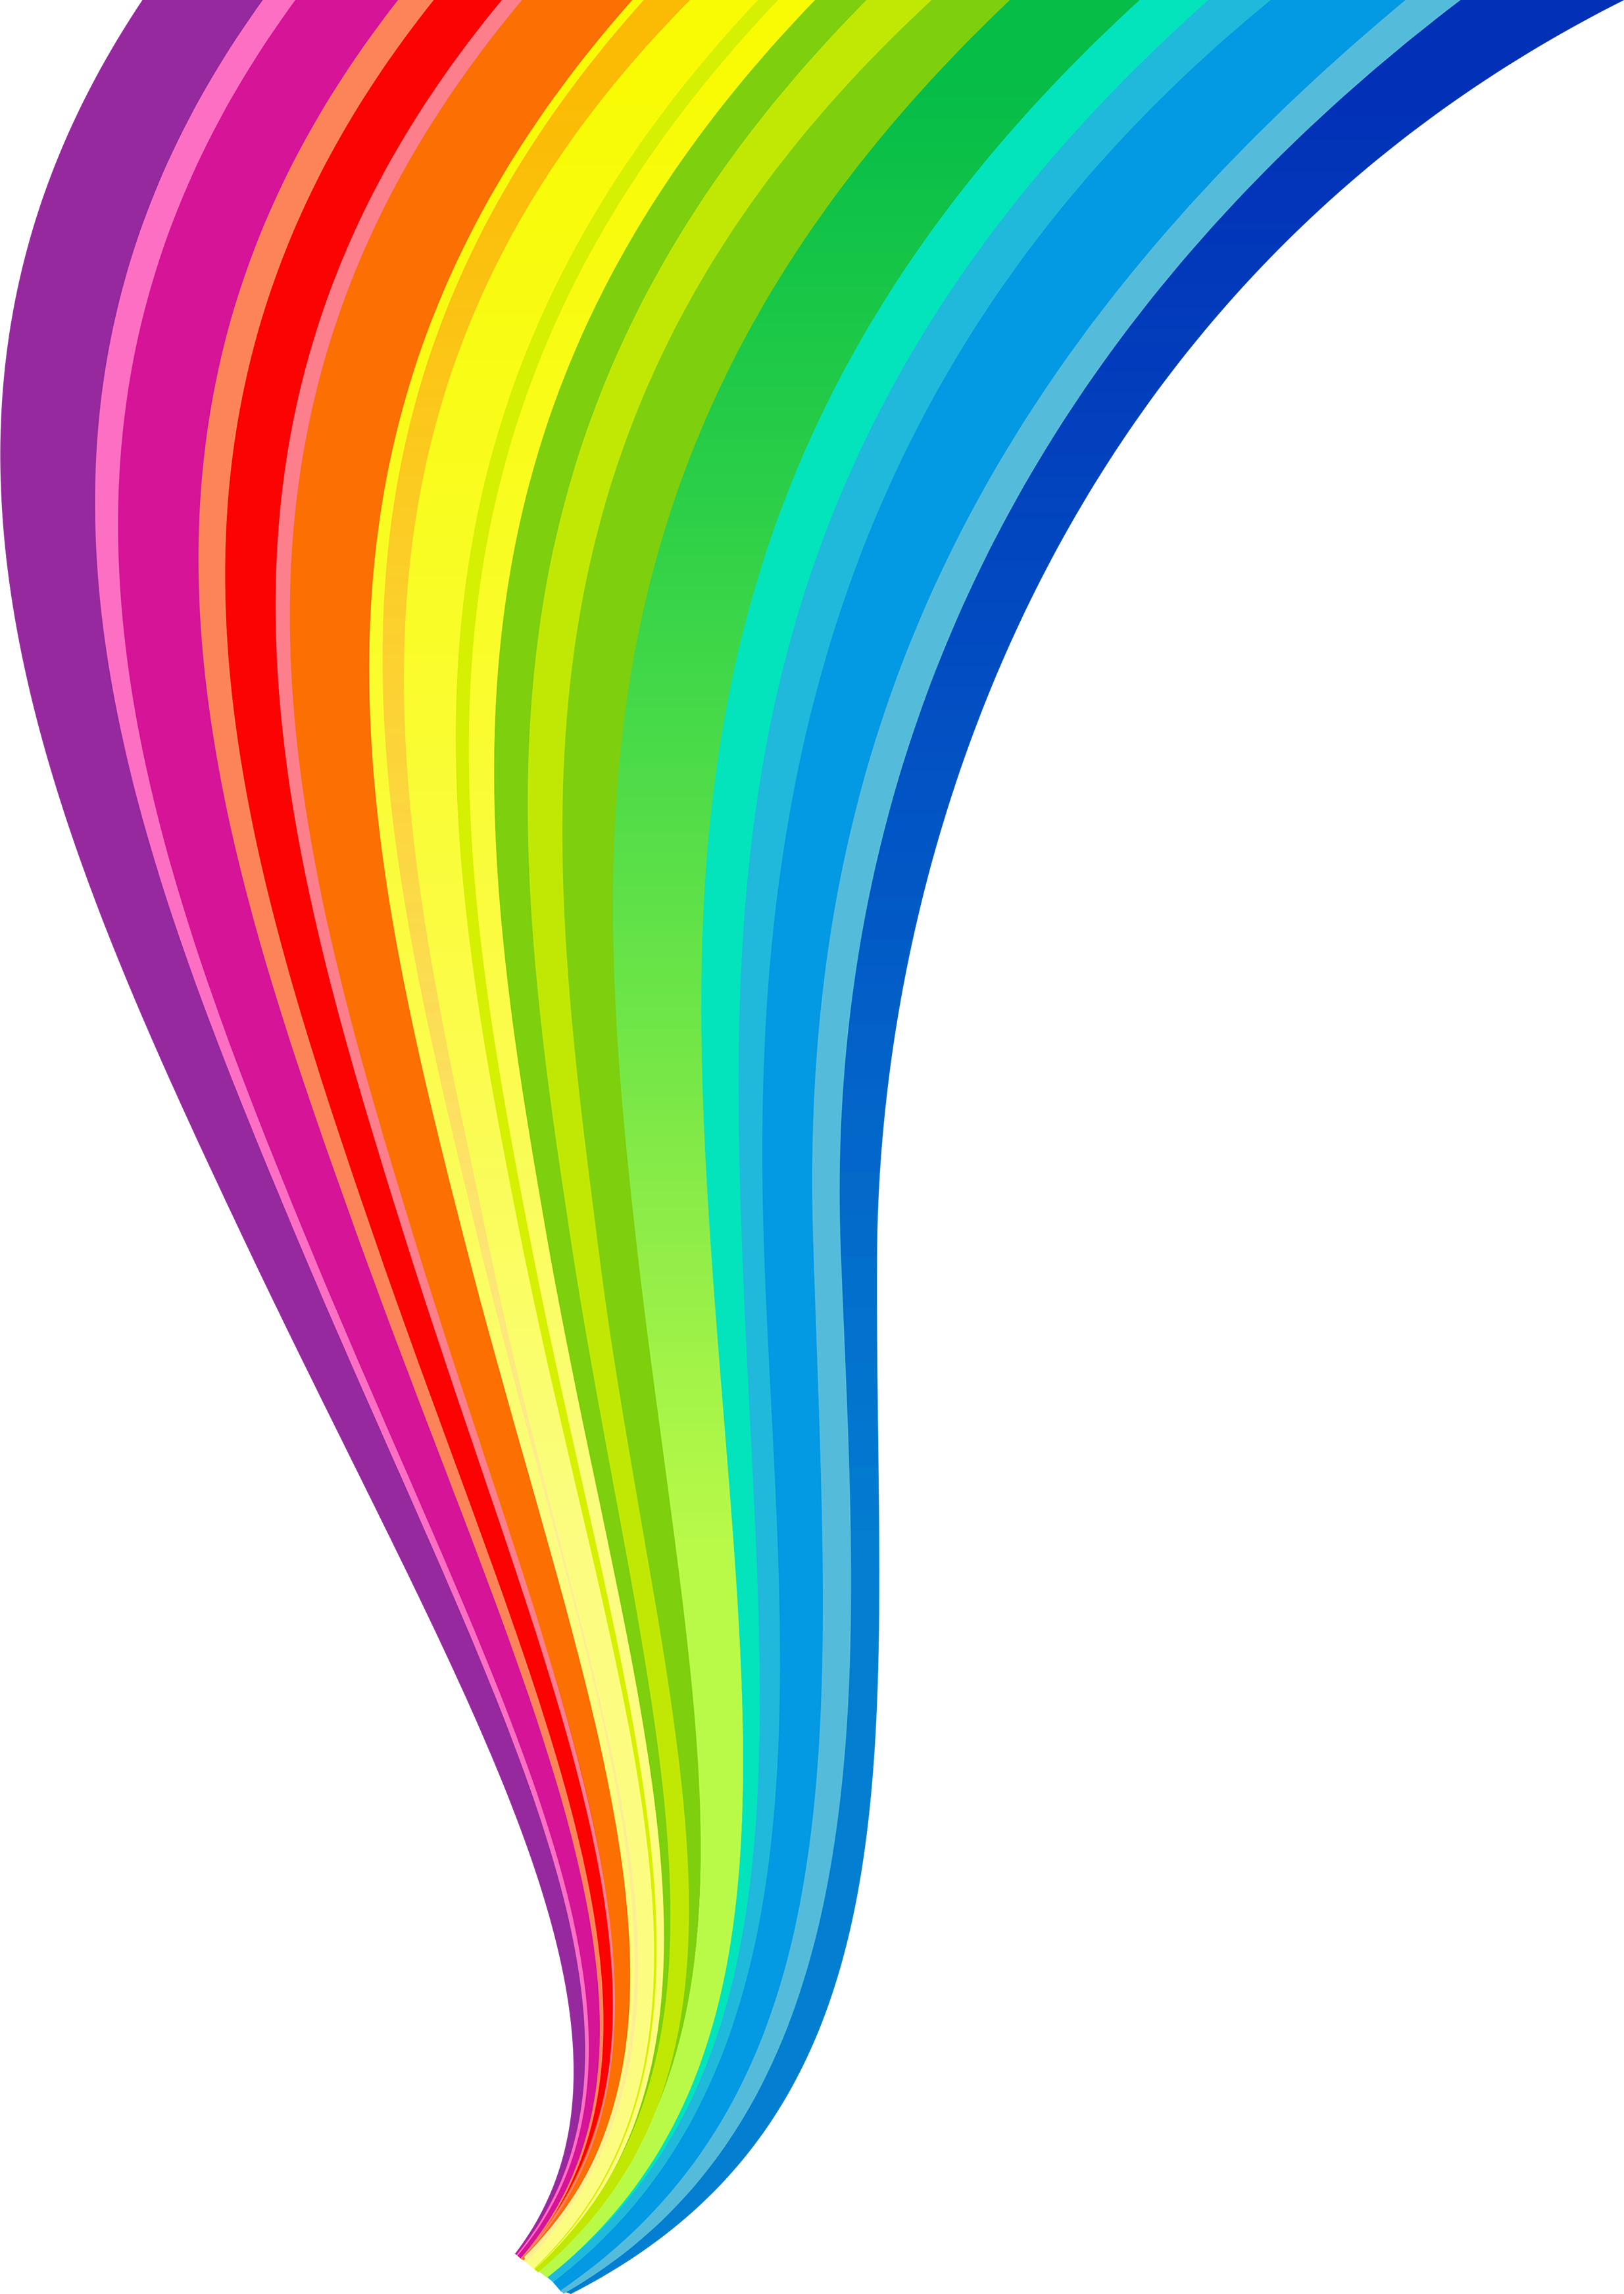 Rainbow background png. Transparent pictures free icons